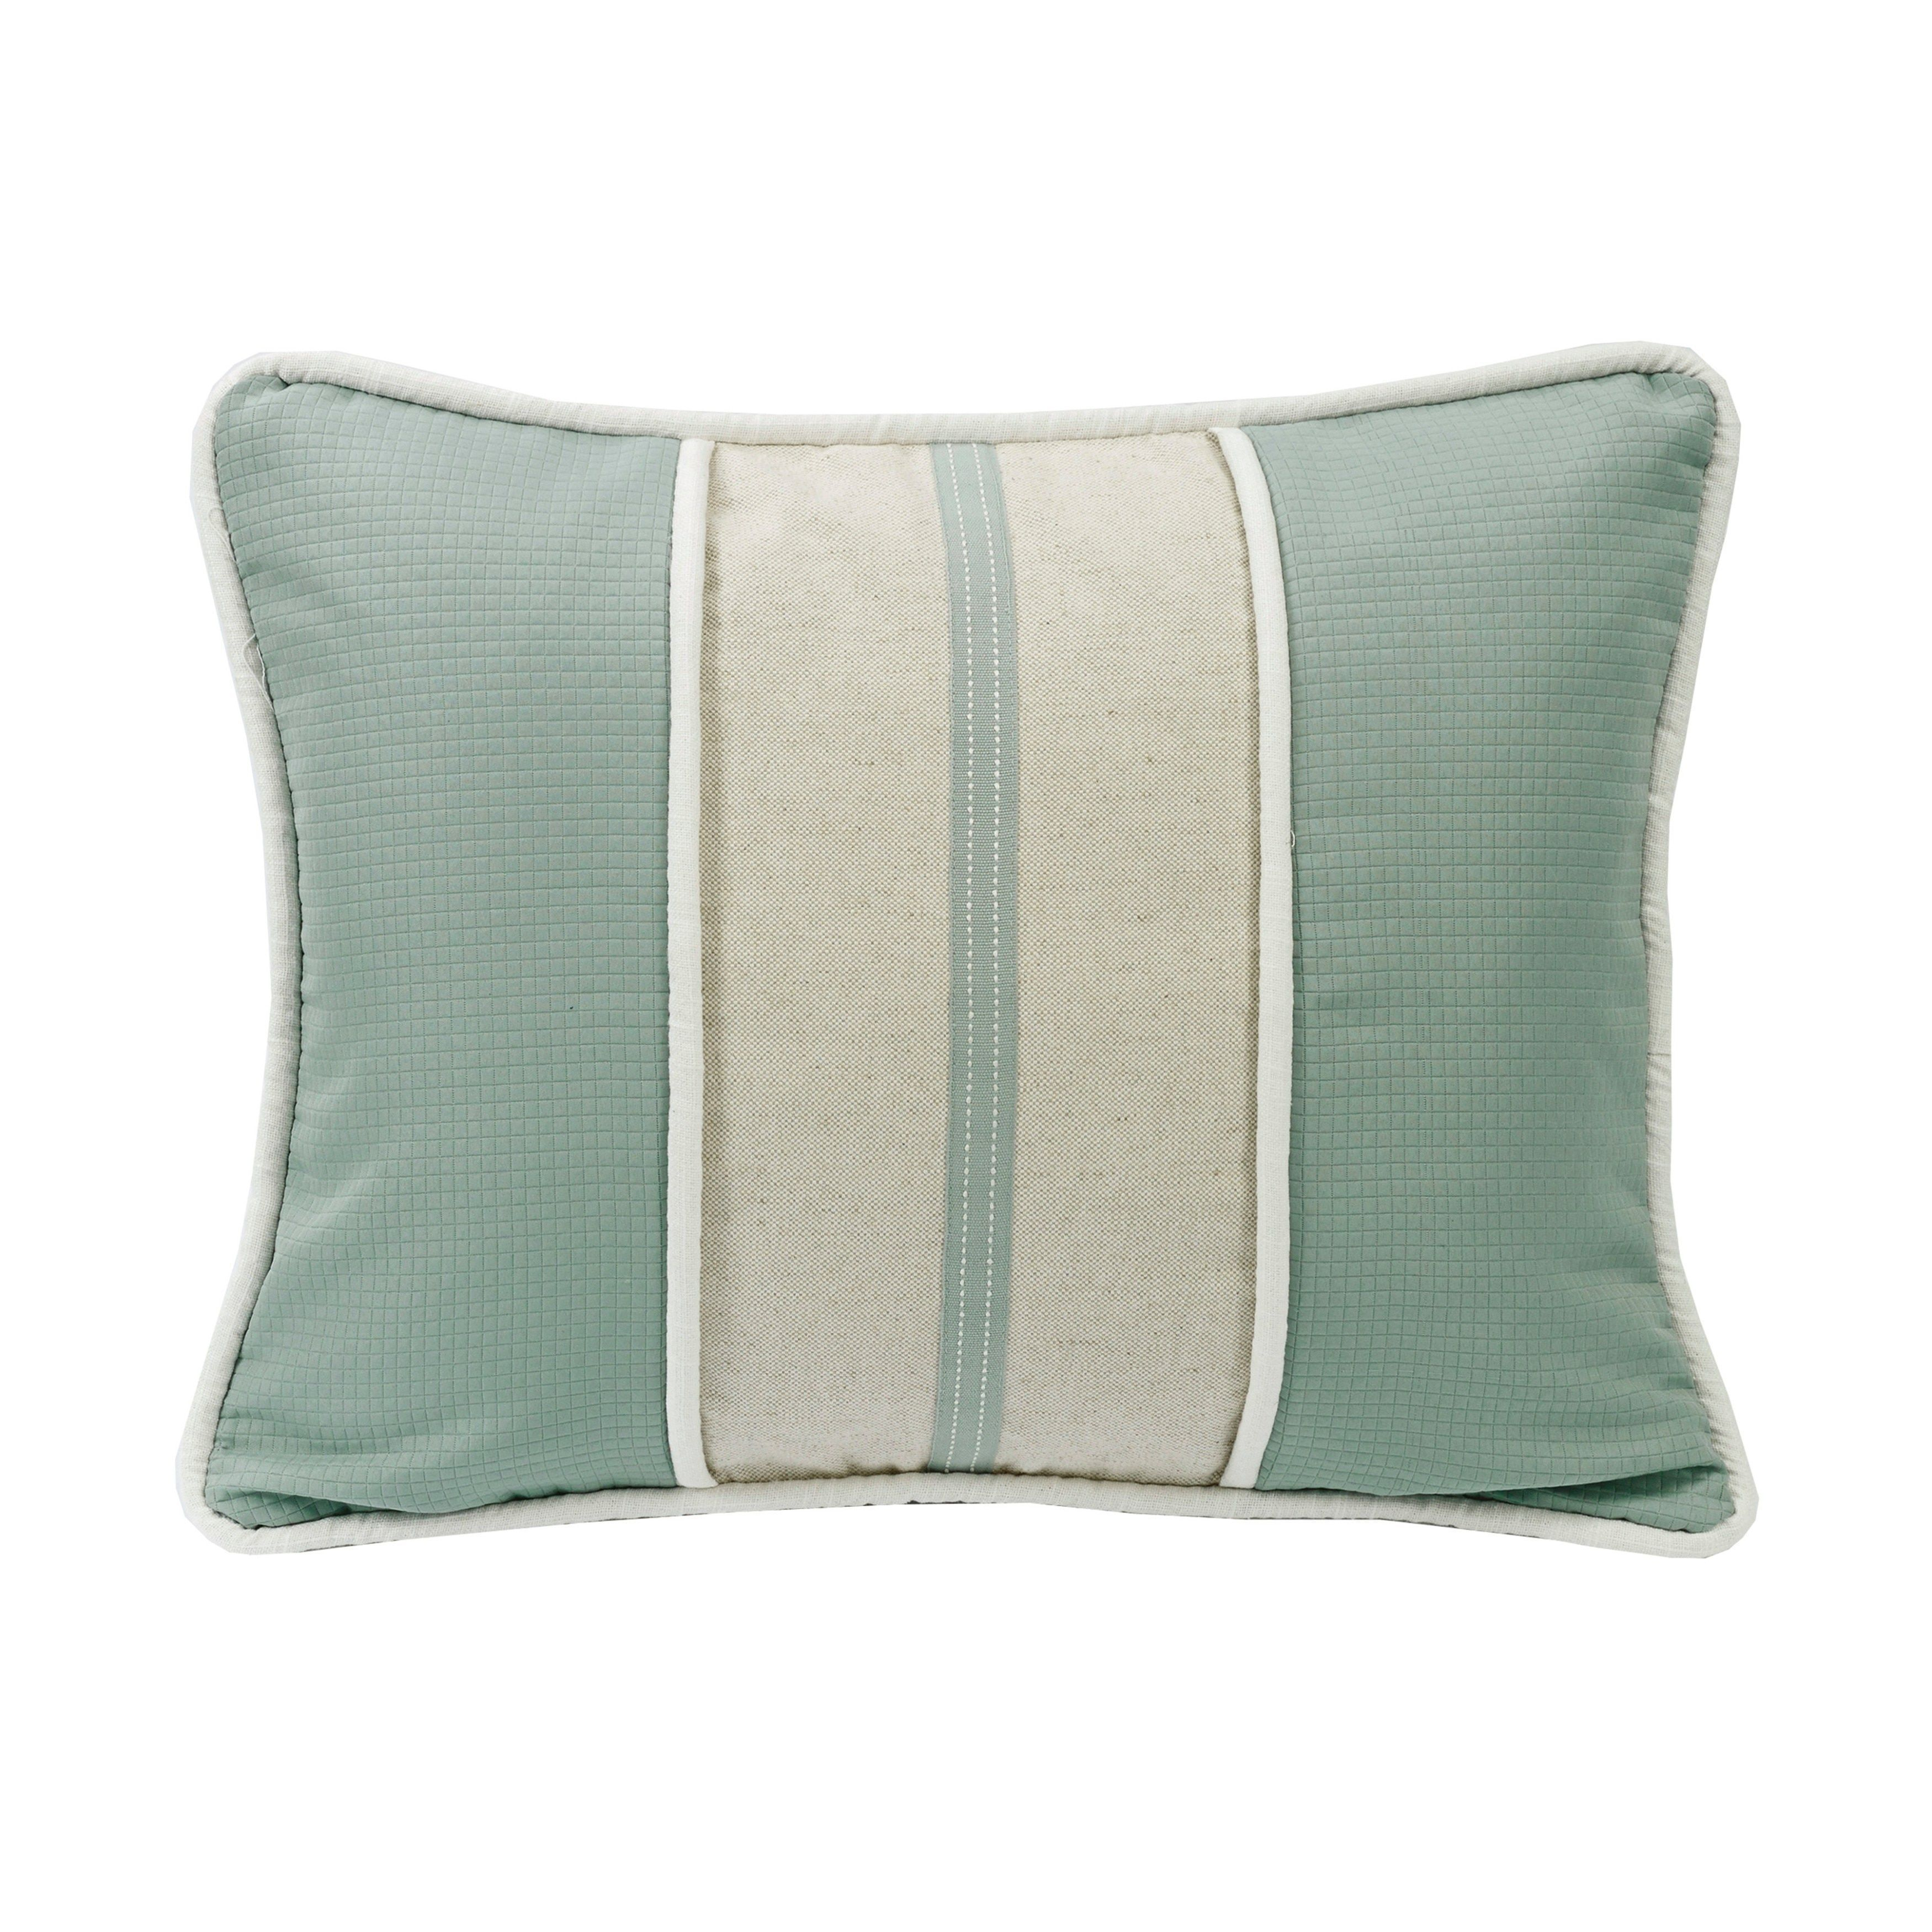 Hiend accents striped textured fabric linen inch x inch